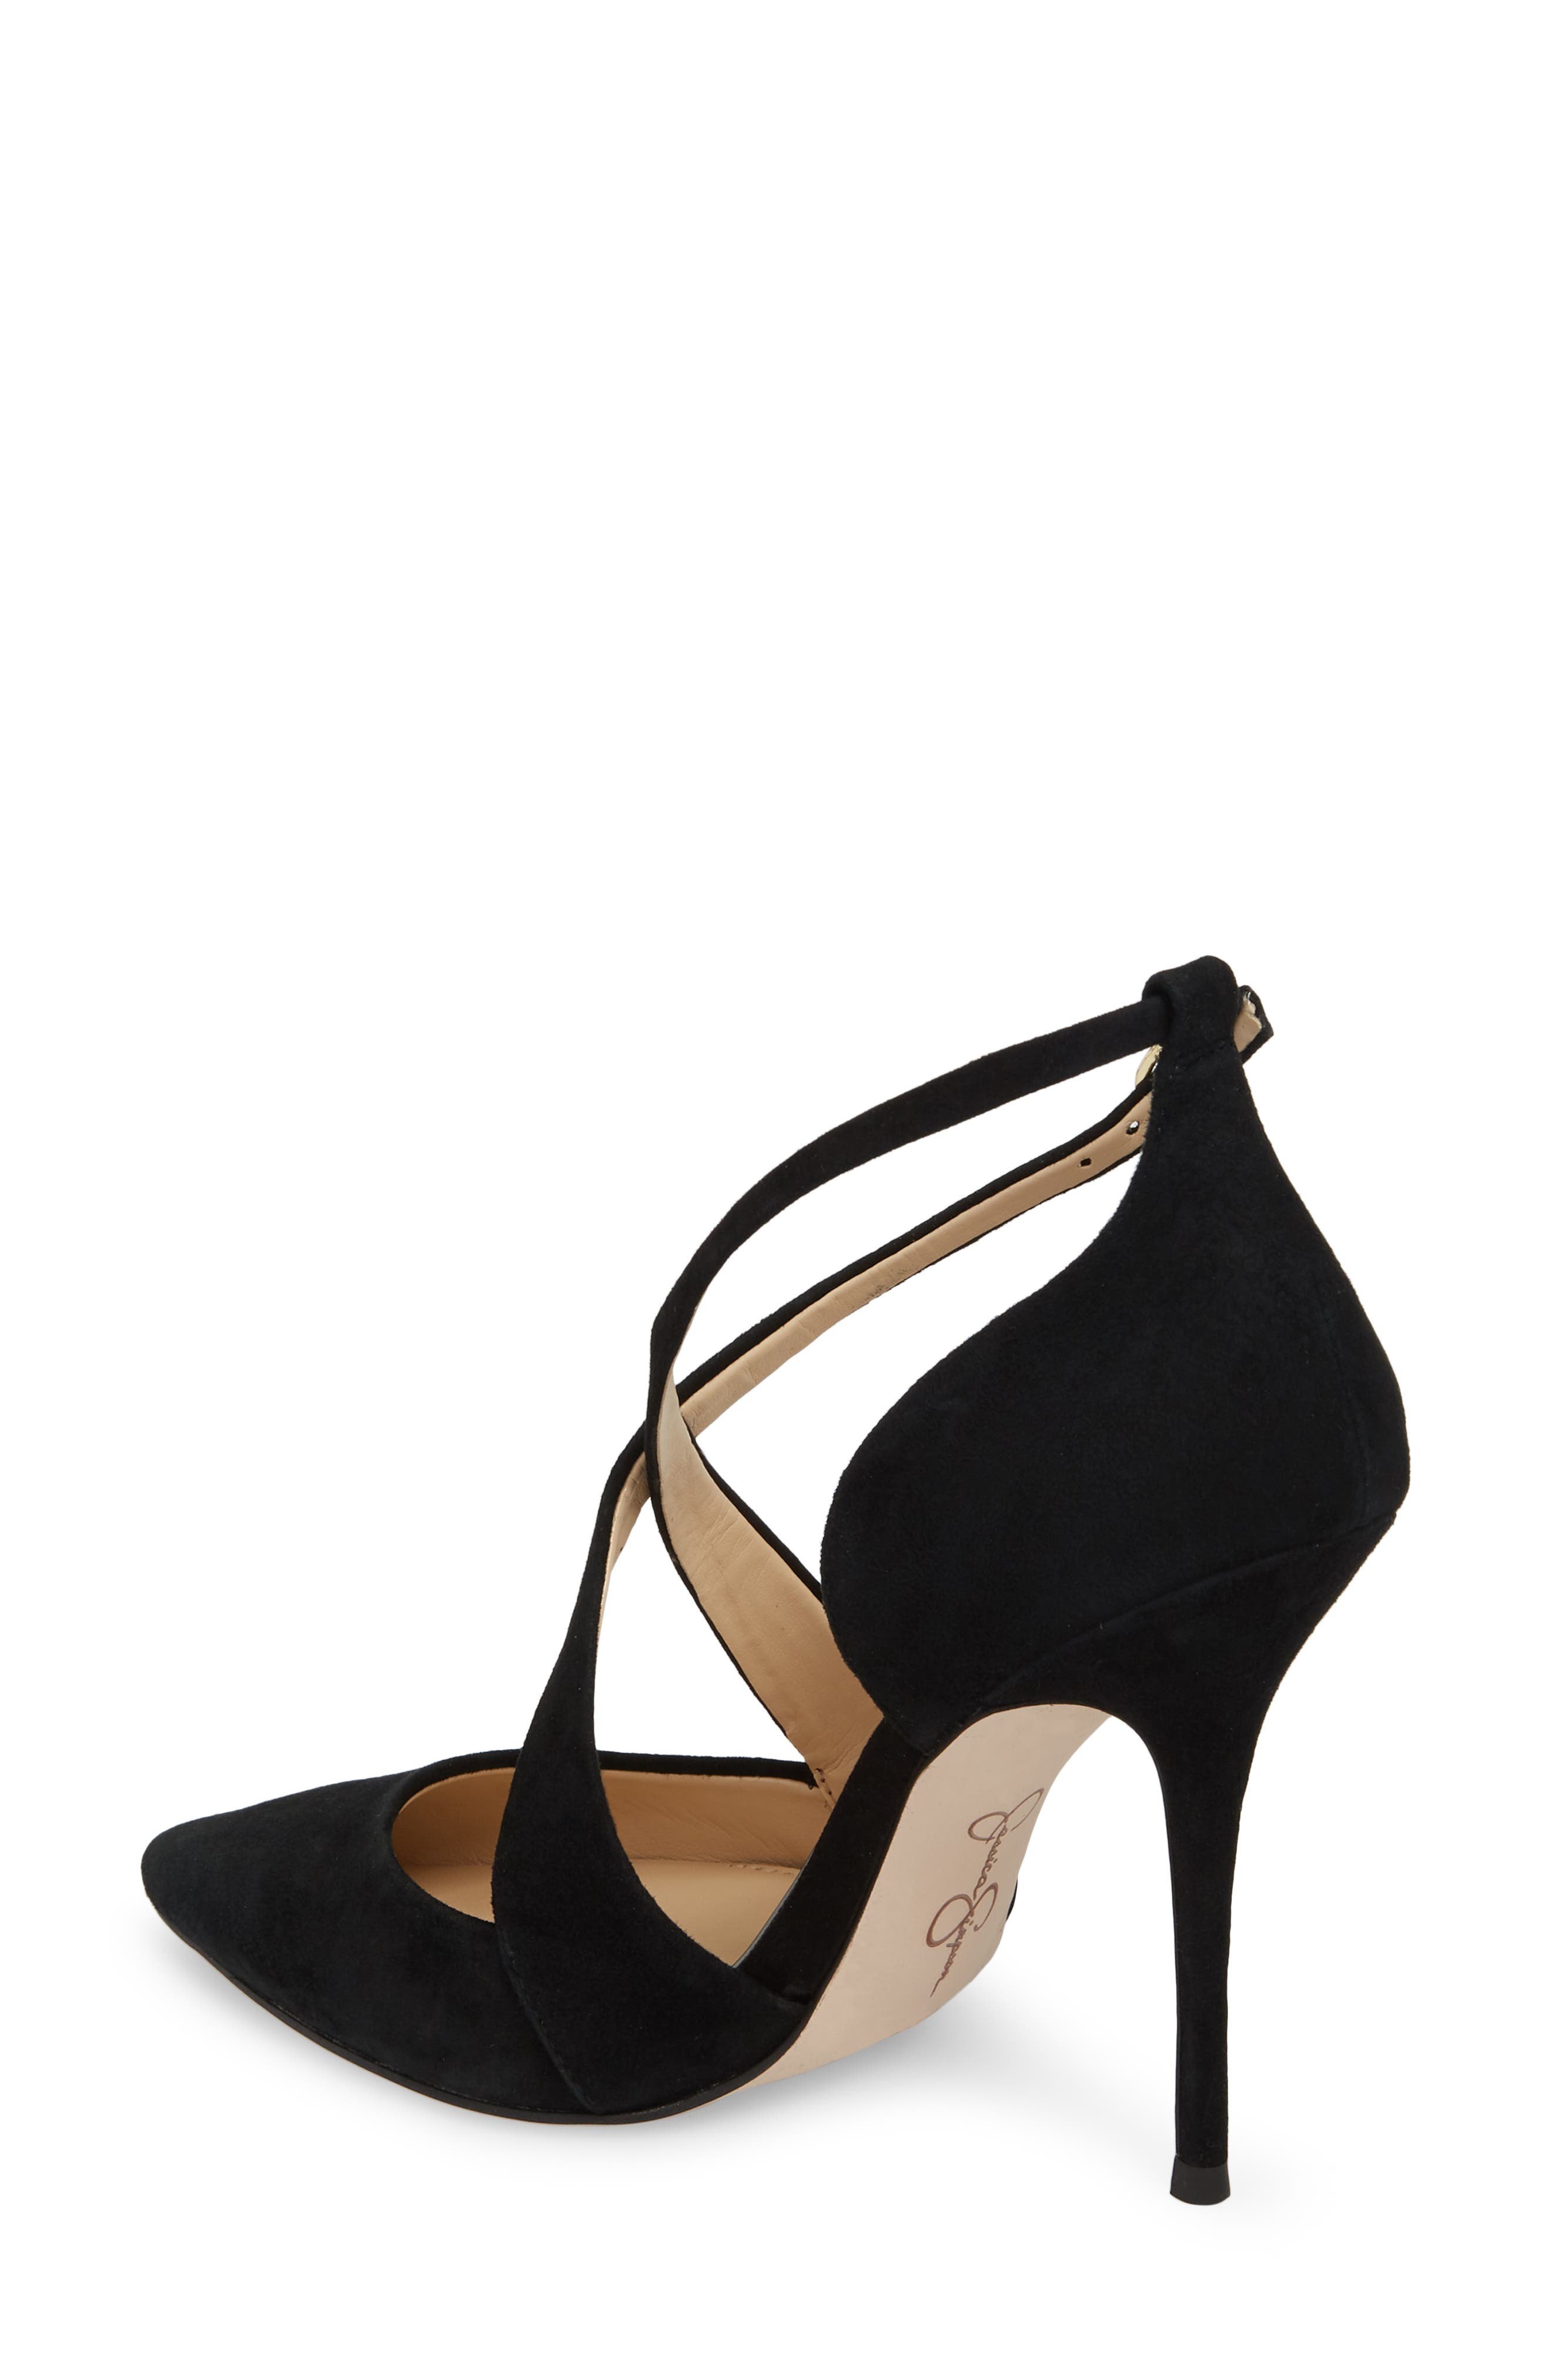 Wixen Cross Strap Pump,                             Alternate thumbnail 2, color,                             BLACK